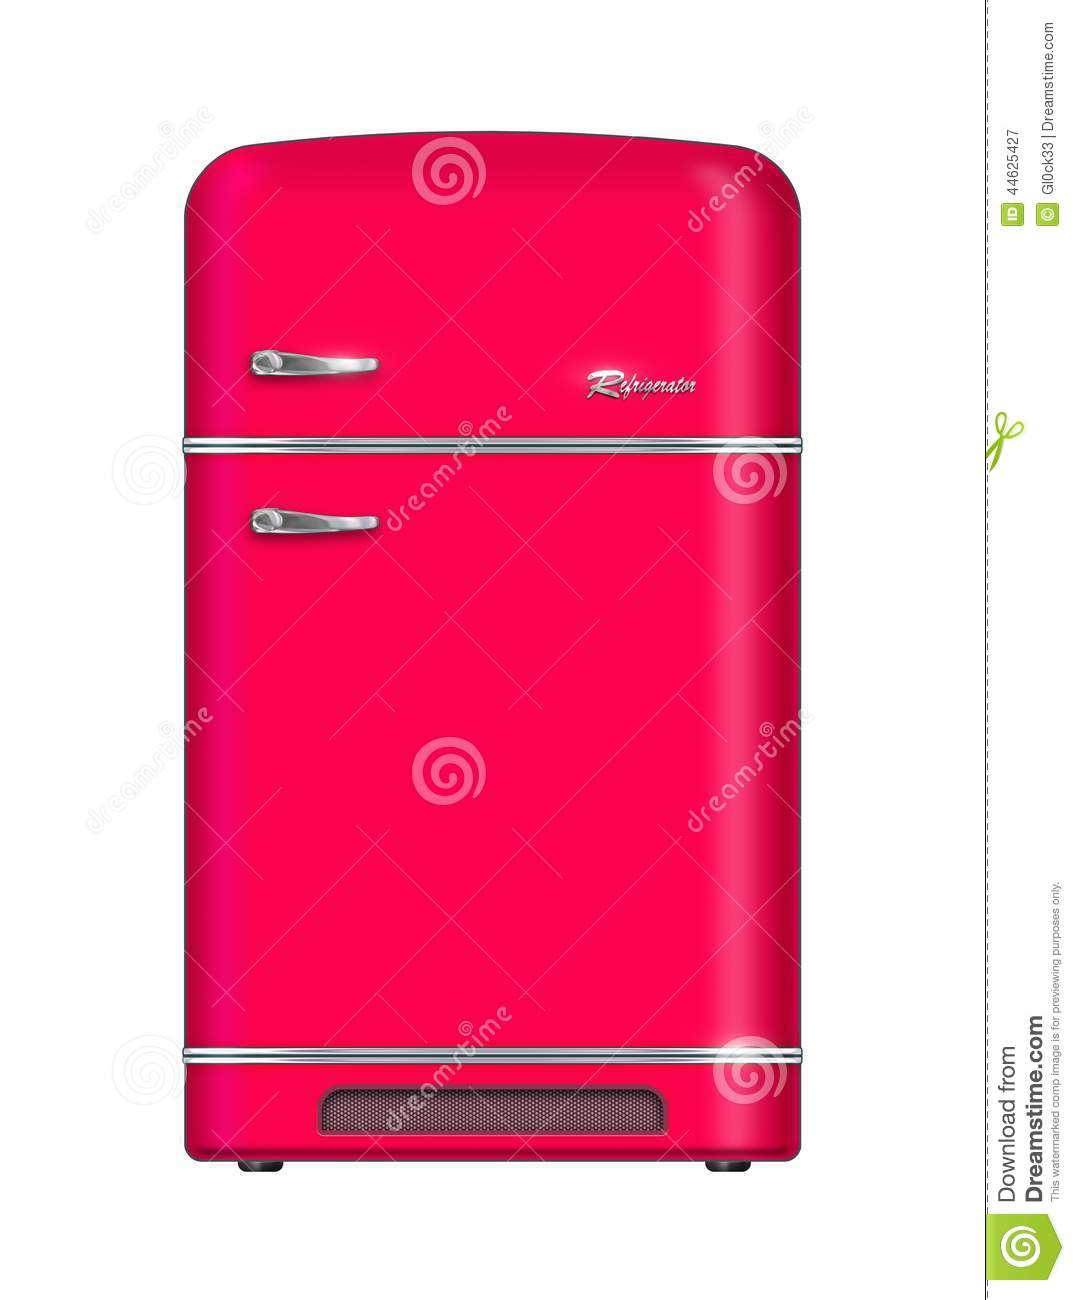 Red retro refrigerator - isolated on white background .